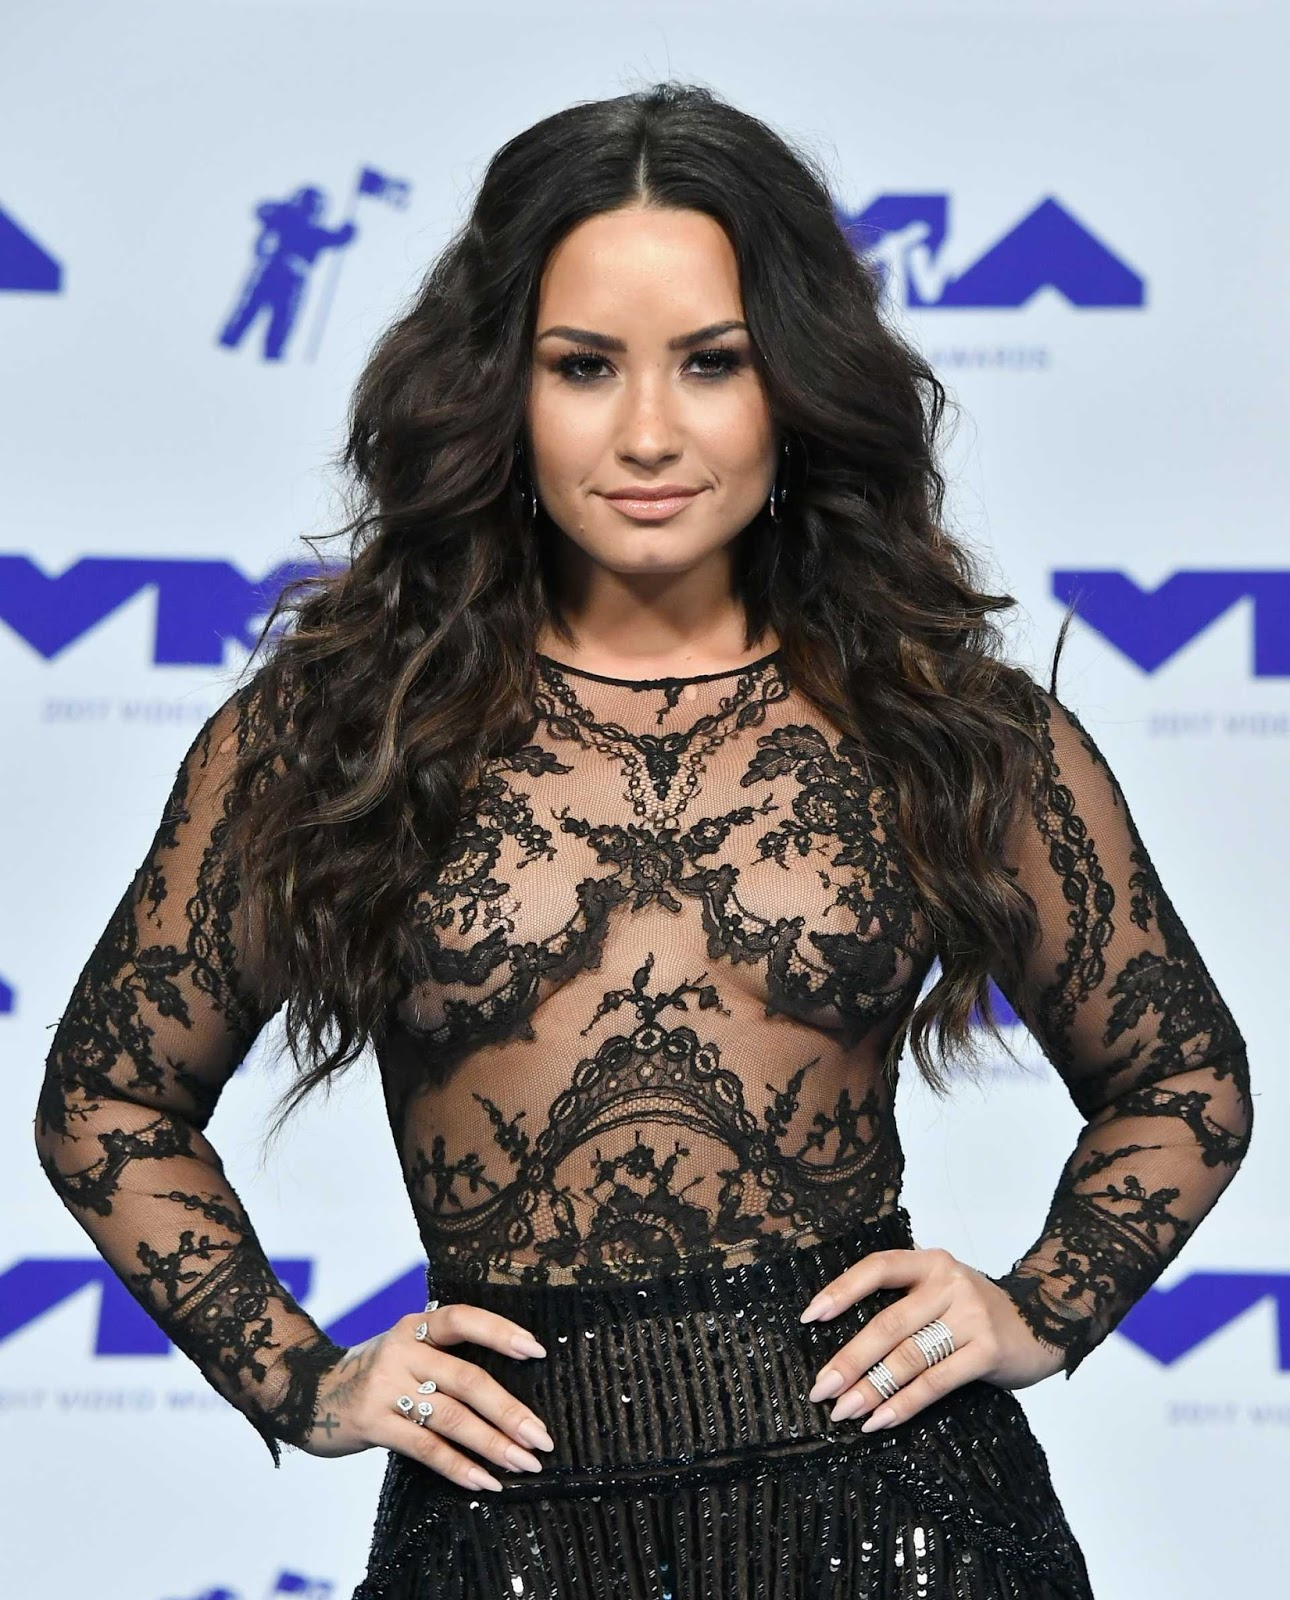 Demi Lovato bares nipples at the 2017 MTV VMAs